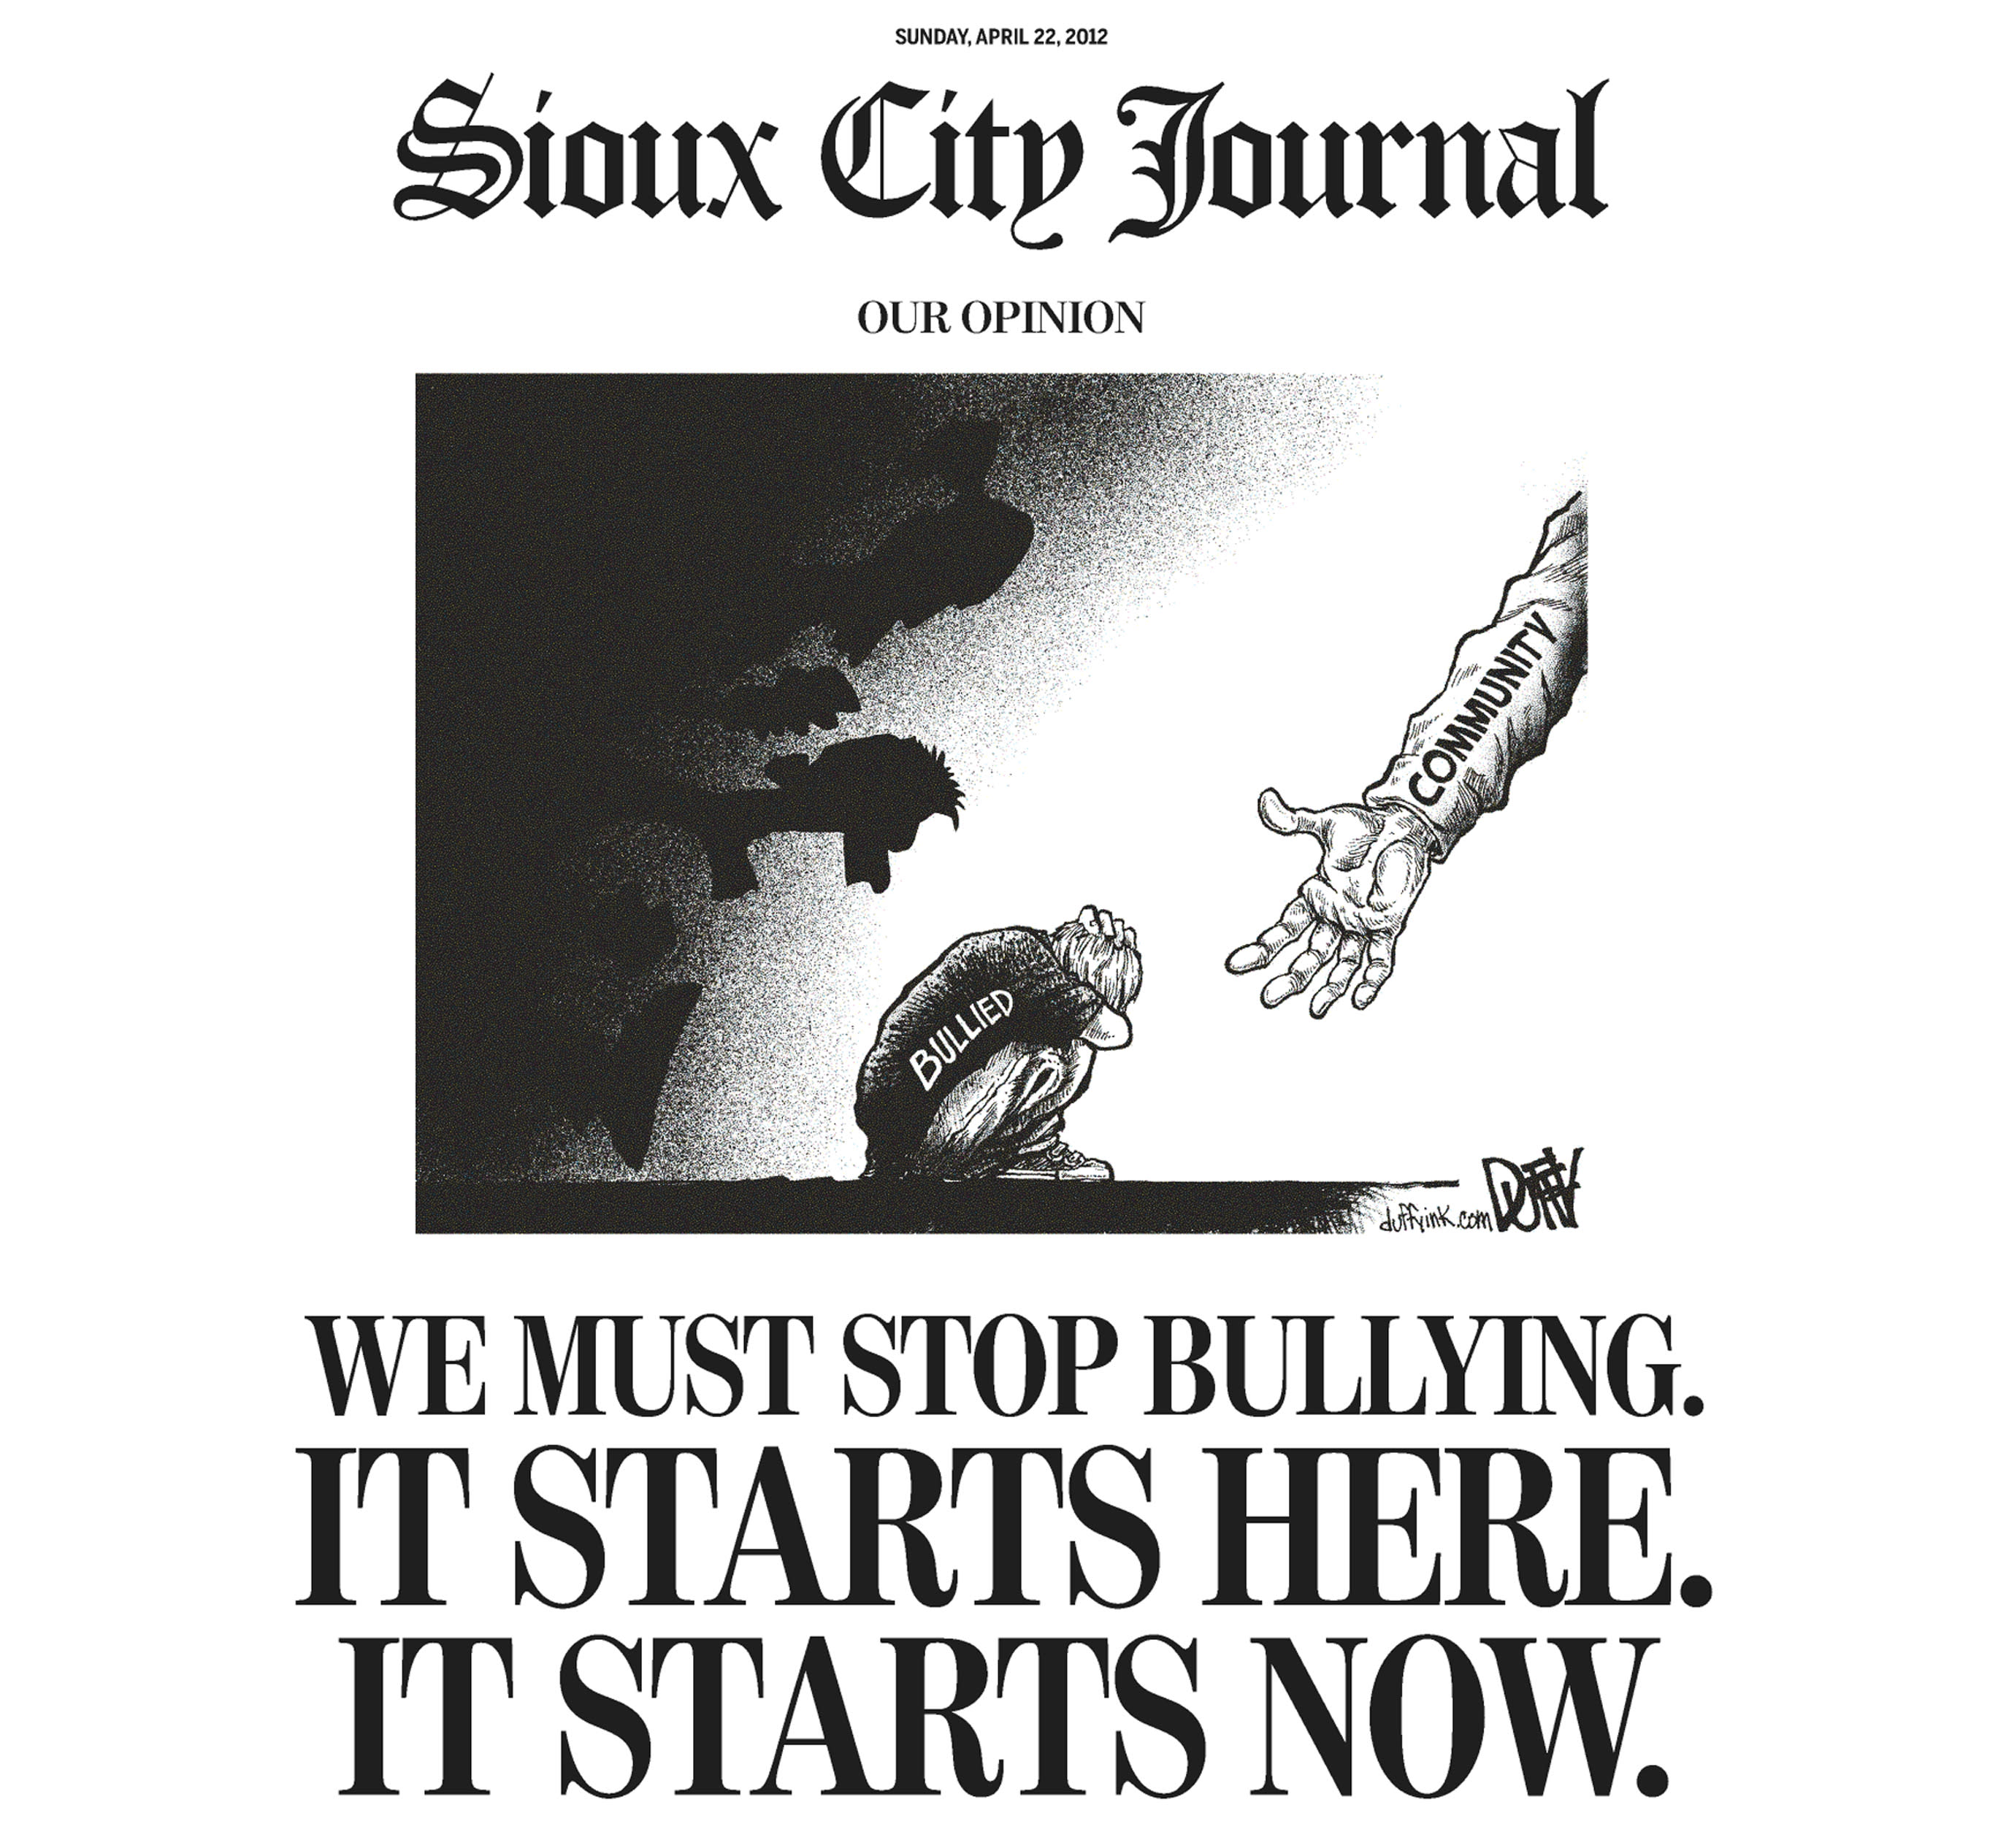 "This image shows the top half of the front page of The Sioux City Journal's Sunday, April 22, 2012, edition, featuring a full-page piece to an anti-bullying editorial after a gay teen committed suicide. The Sioux City Journal's front-page opinion piece calls on the community to be pro-active in stopping bullying and urges members to learn more about the problem by seeing the acclaimed new film, ""Bully,"" which documents the harassment of Sioux City middle school student. Relatives have said 14-year-old Kenneth Weishuhn Jr. suffered intense harassment, including threatening cellphone calls and nasty comments posted online, after coming out to family and friends about a month ago. He died April 15 from what the local sheriff's office described only as a ""self-inflicted injury."" (AP Photo/The Sioux City Journal)"